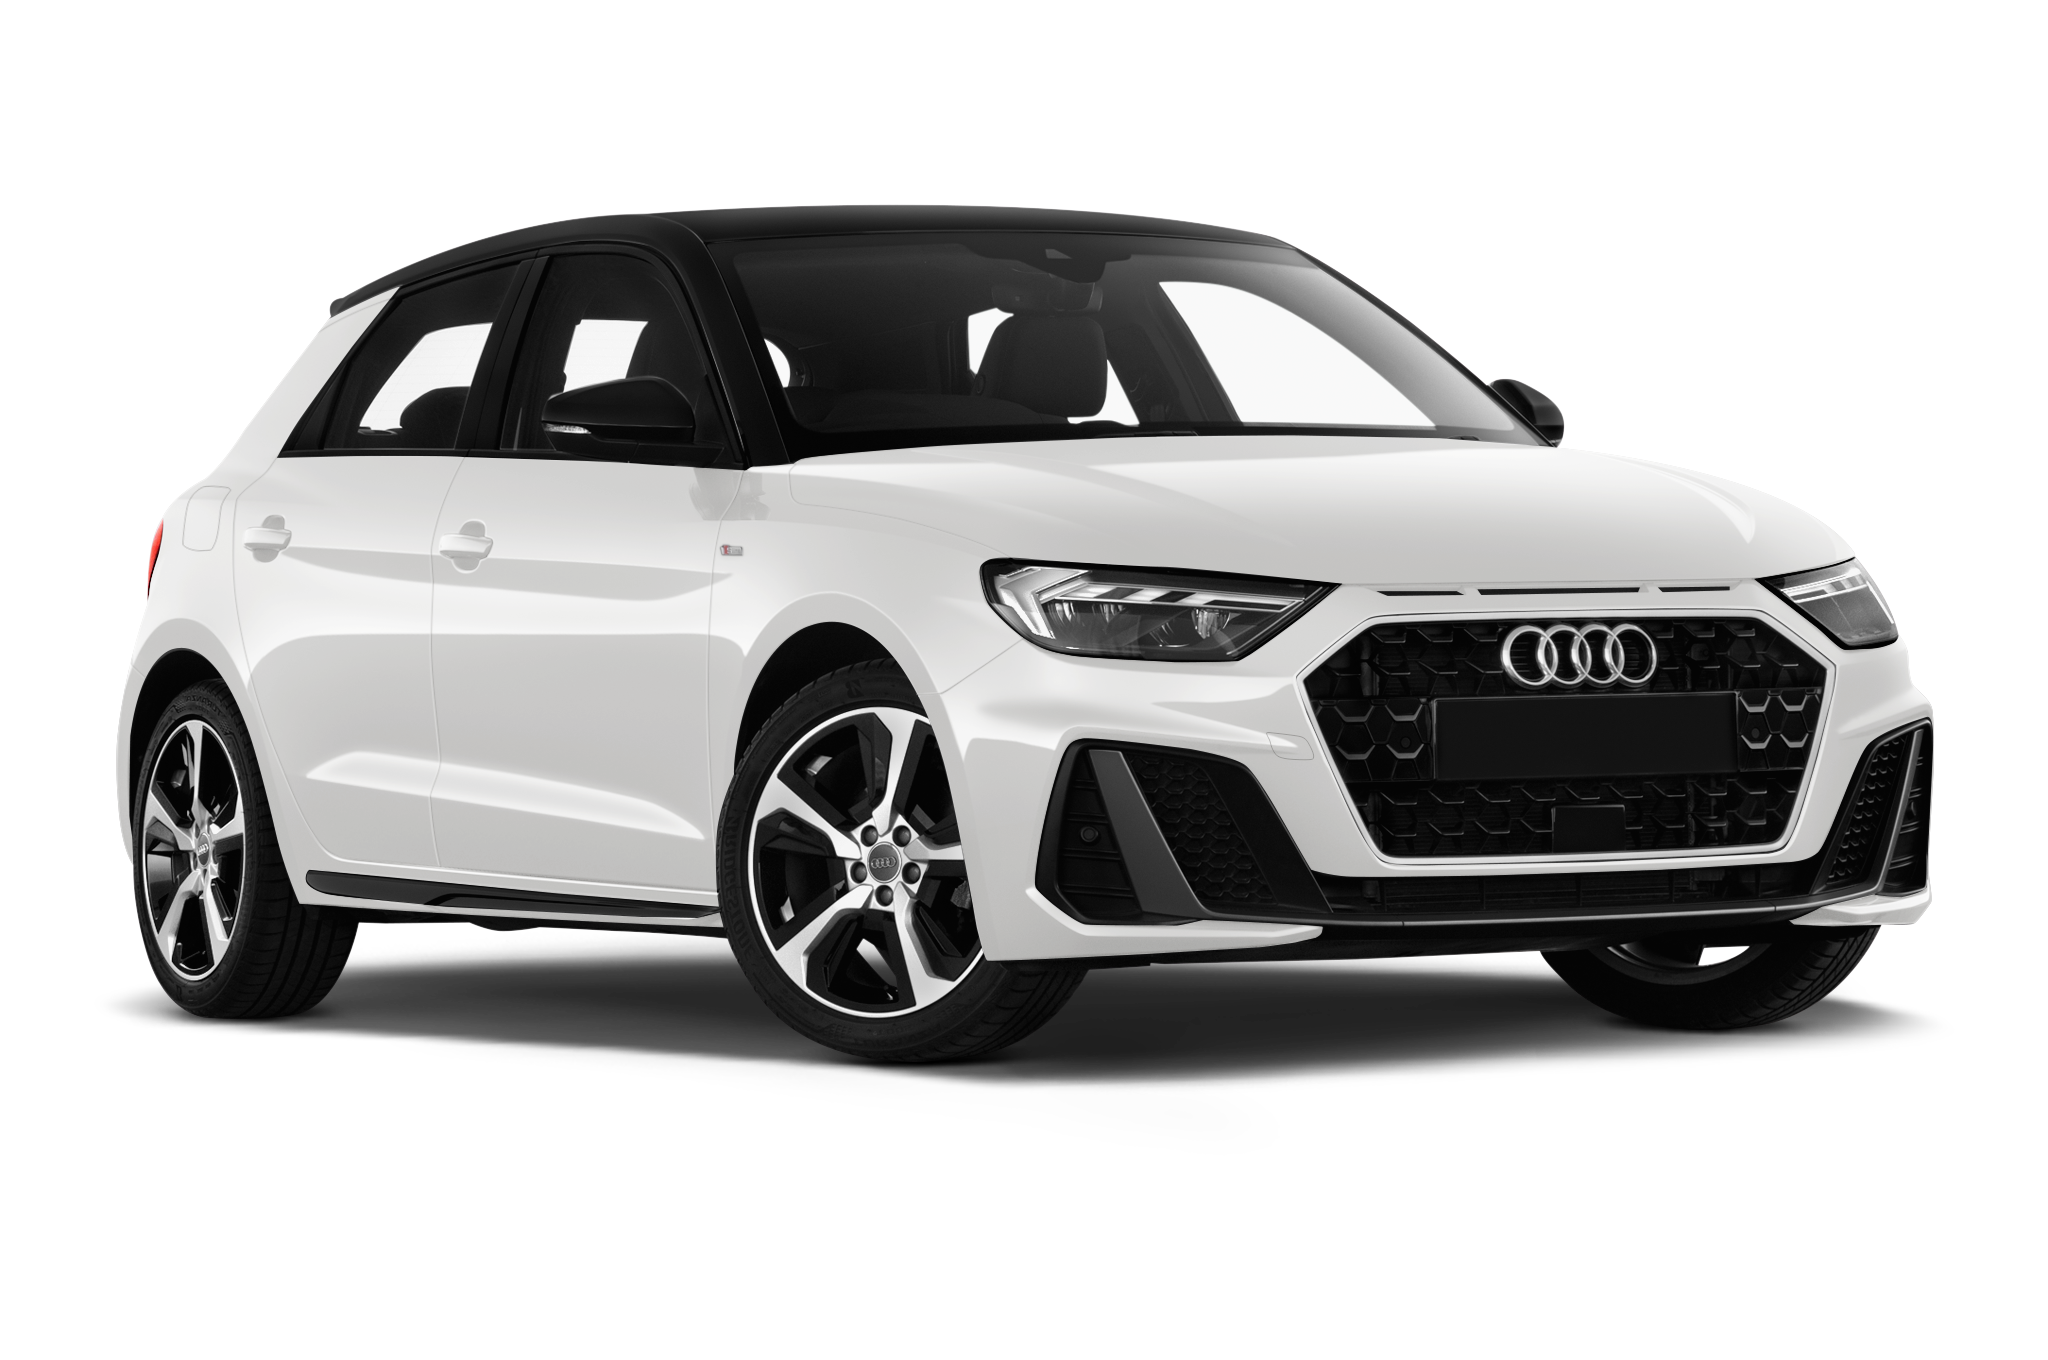 Audi A1 Sportback Lease Deals From 197pm Carwow